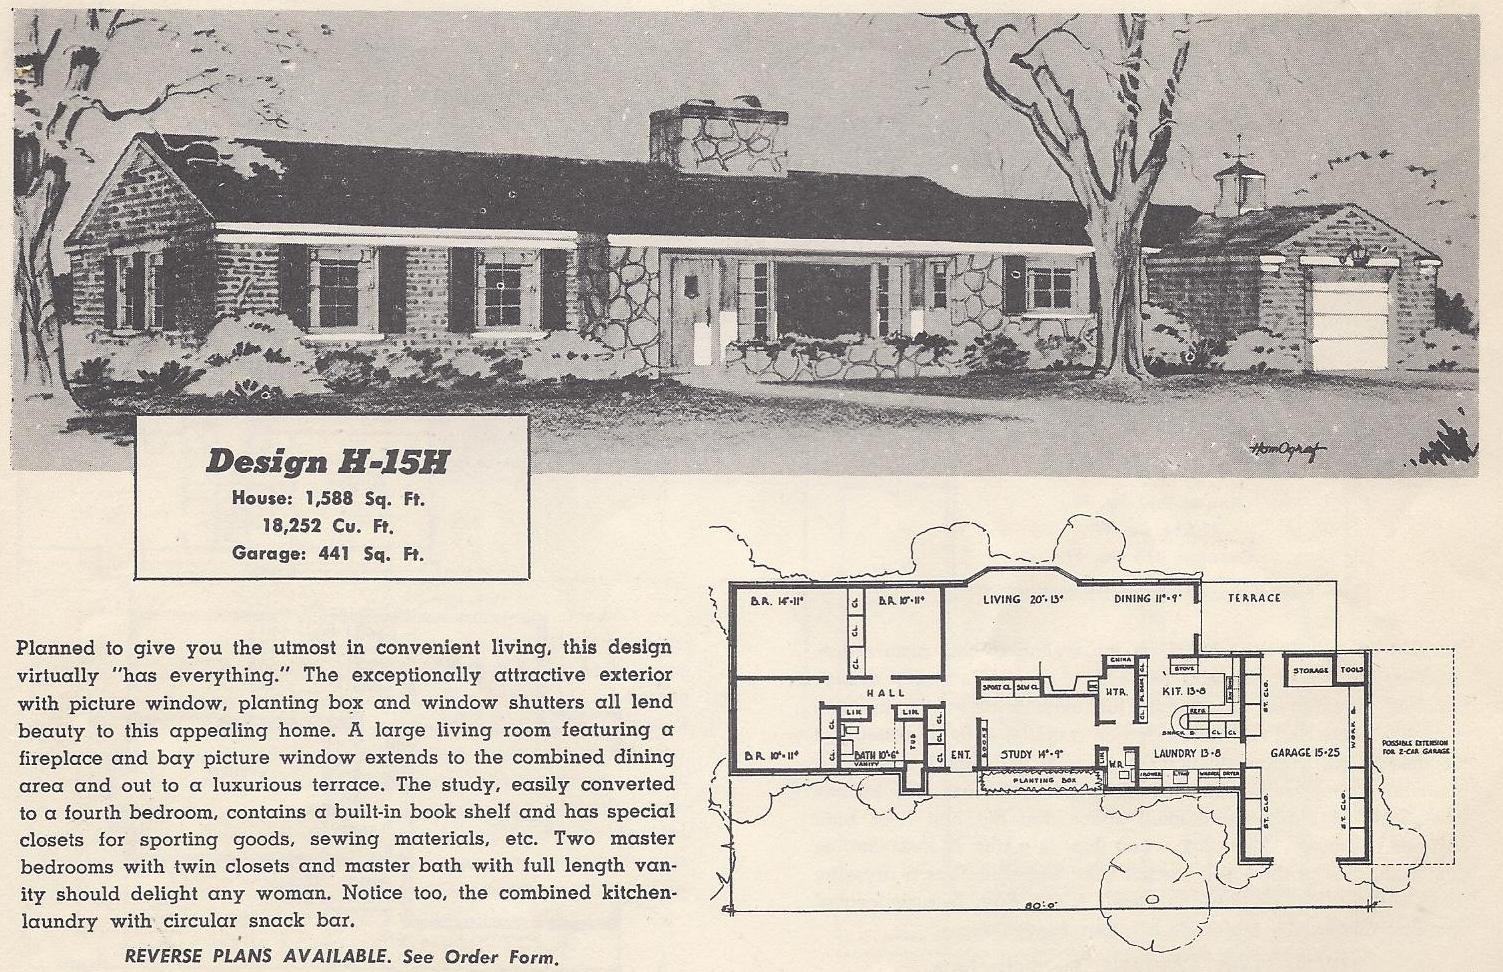 Vintage house plans 15h antique alter ego for Vintage ranch house plans